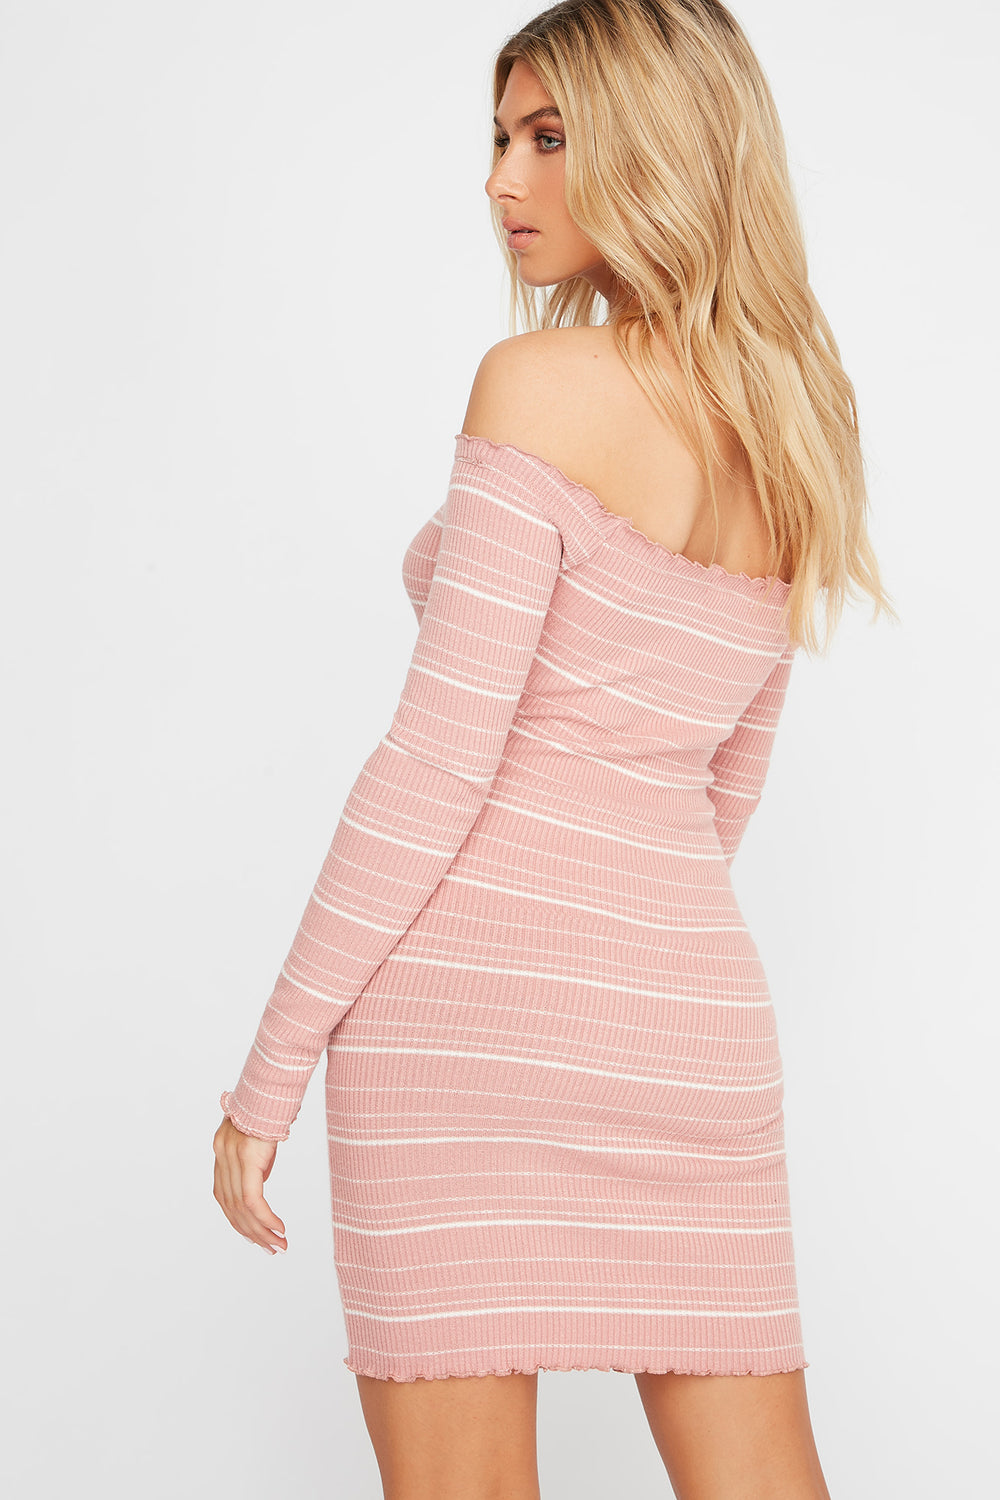 Striped Off The Shoulder Button Long Sleeve Ribbed Dress Sky Blue